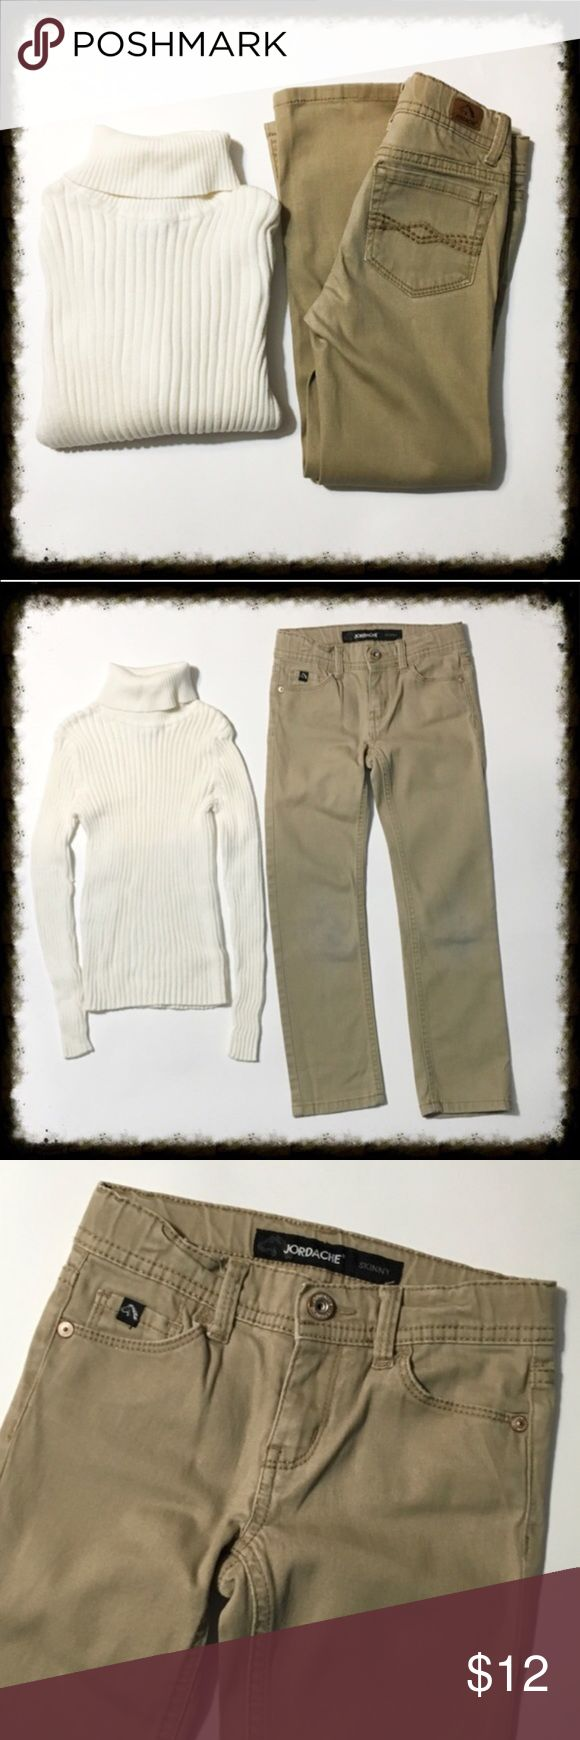 Ribbed Turtleneck & Khaki Skinny Jeans Girl's 6/6X Jeans are a size 6 slim. They have adjustable tabs in the waist. Brand is Jordache. They do show some wear in the knees with light stains. The turtleneck sweater is from Maggie and Zoe. It is 100% cotton. Size large 6X. Ribbed knit and ivory in color. In good condition with no stains Matching Sets